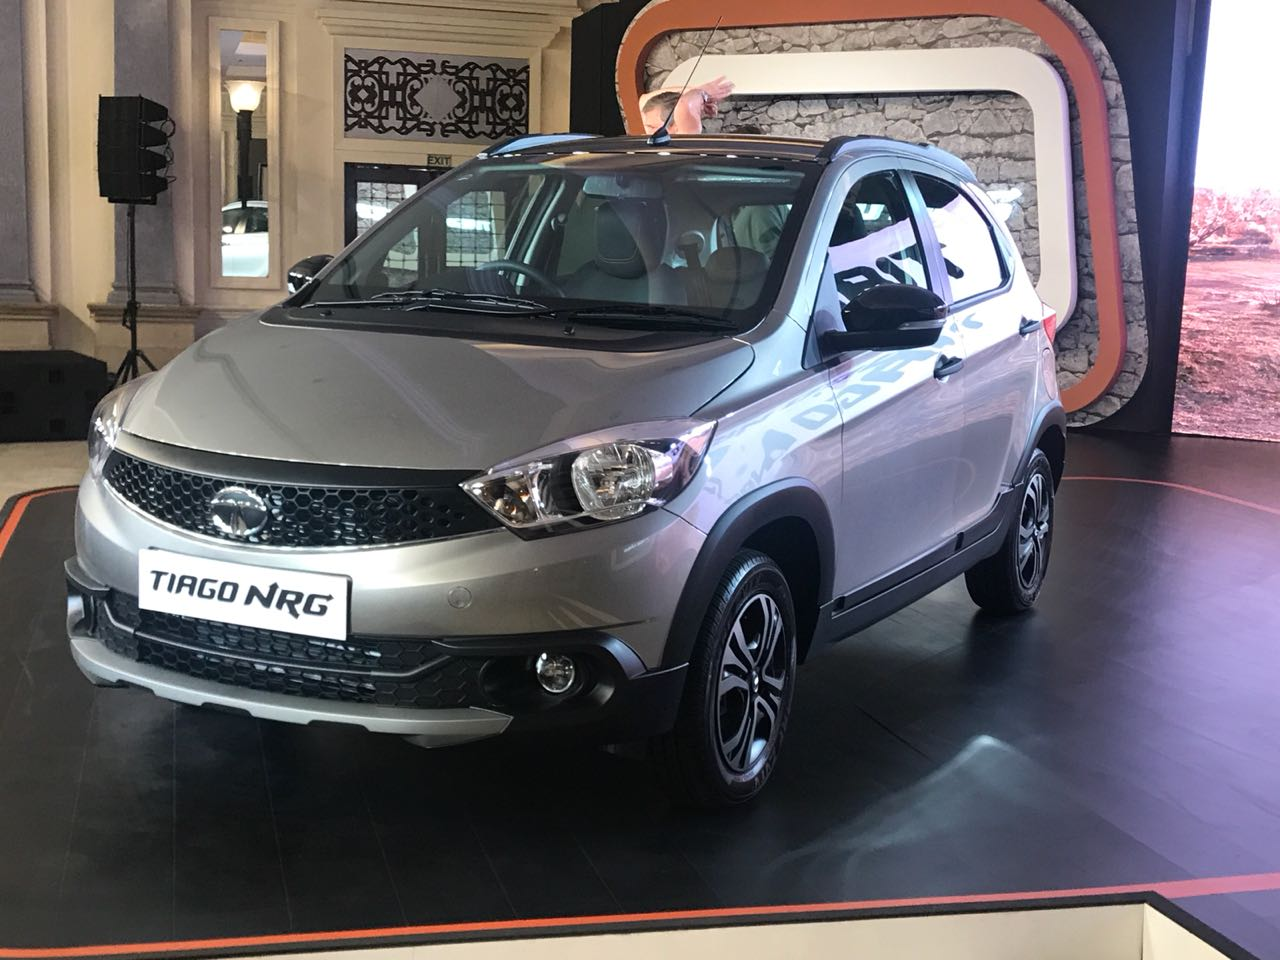 As the trend has been with most crossovers based on their hatchback sibling, the Tiago NRG gets a slightly beefed up stance, ground clearance has been increased to 180 mm. The Tiago NRG is being offered in 3 colours, Malabar Silver, Canyon Orange and Fuji White.